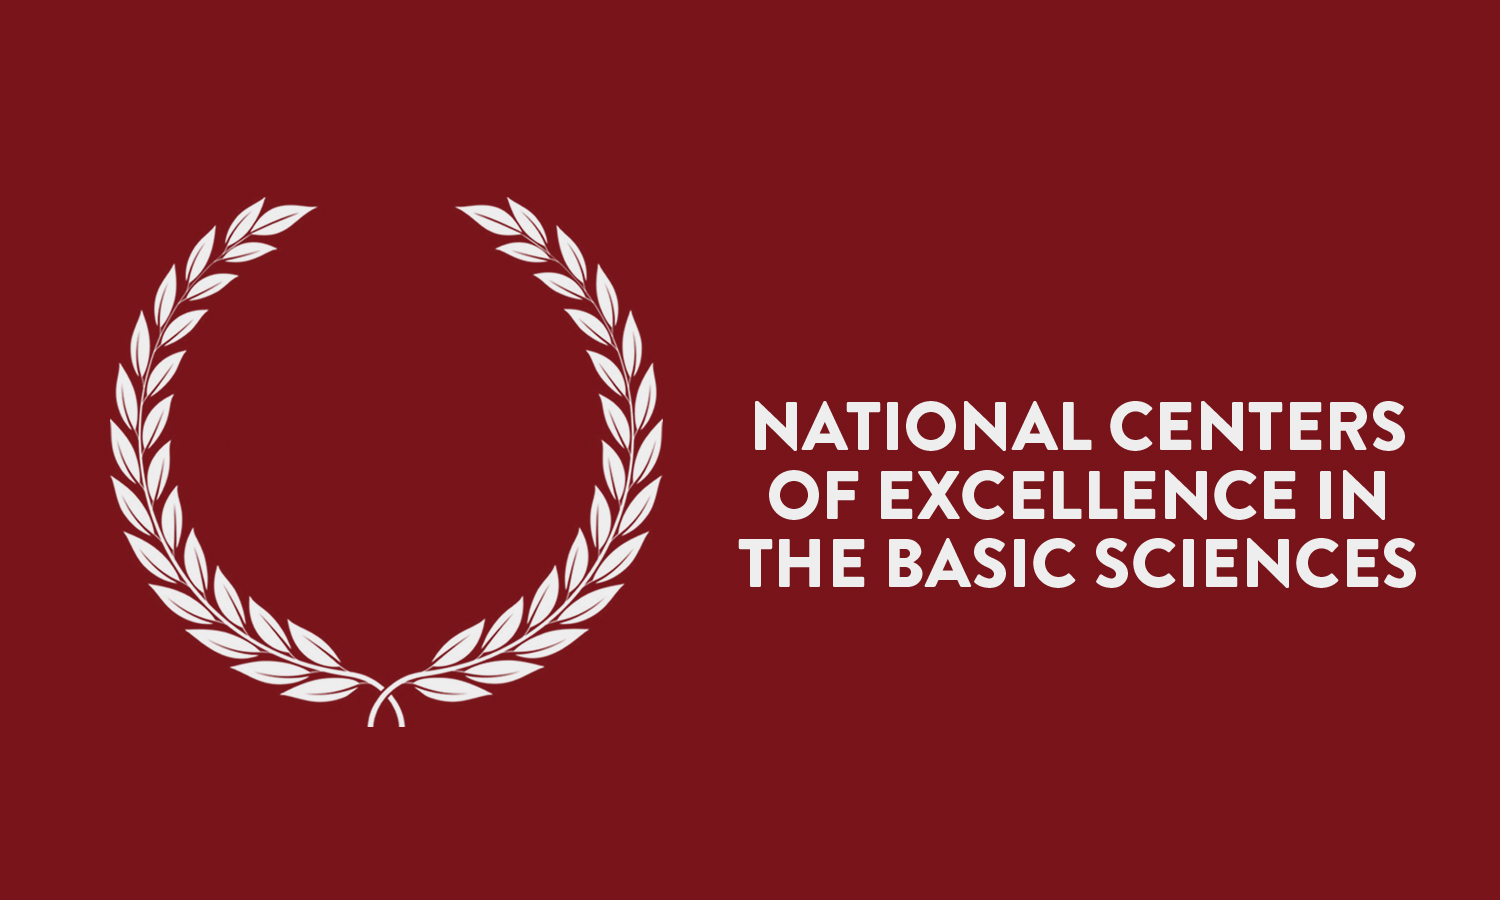 National Centers of Excellence in the Basic Sciences